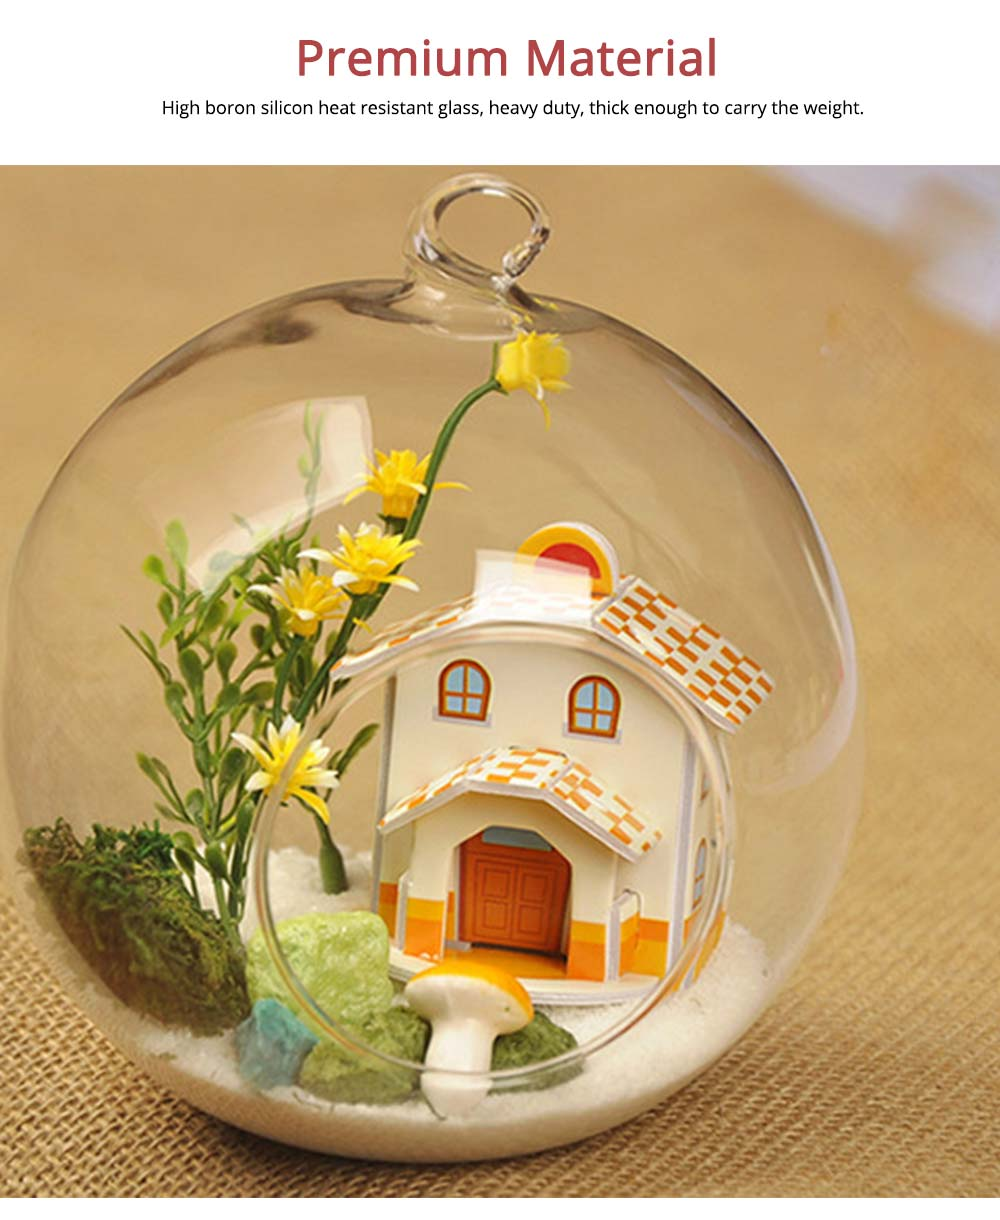 Hanging Glass Terrarium Miniature House Decoration for House, Office, Room,Gift 3